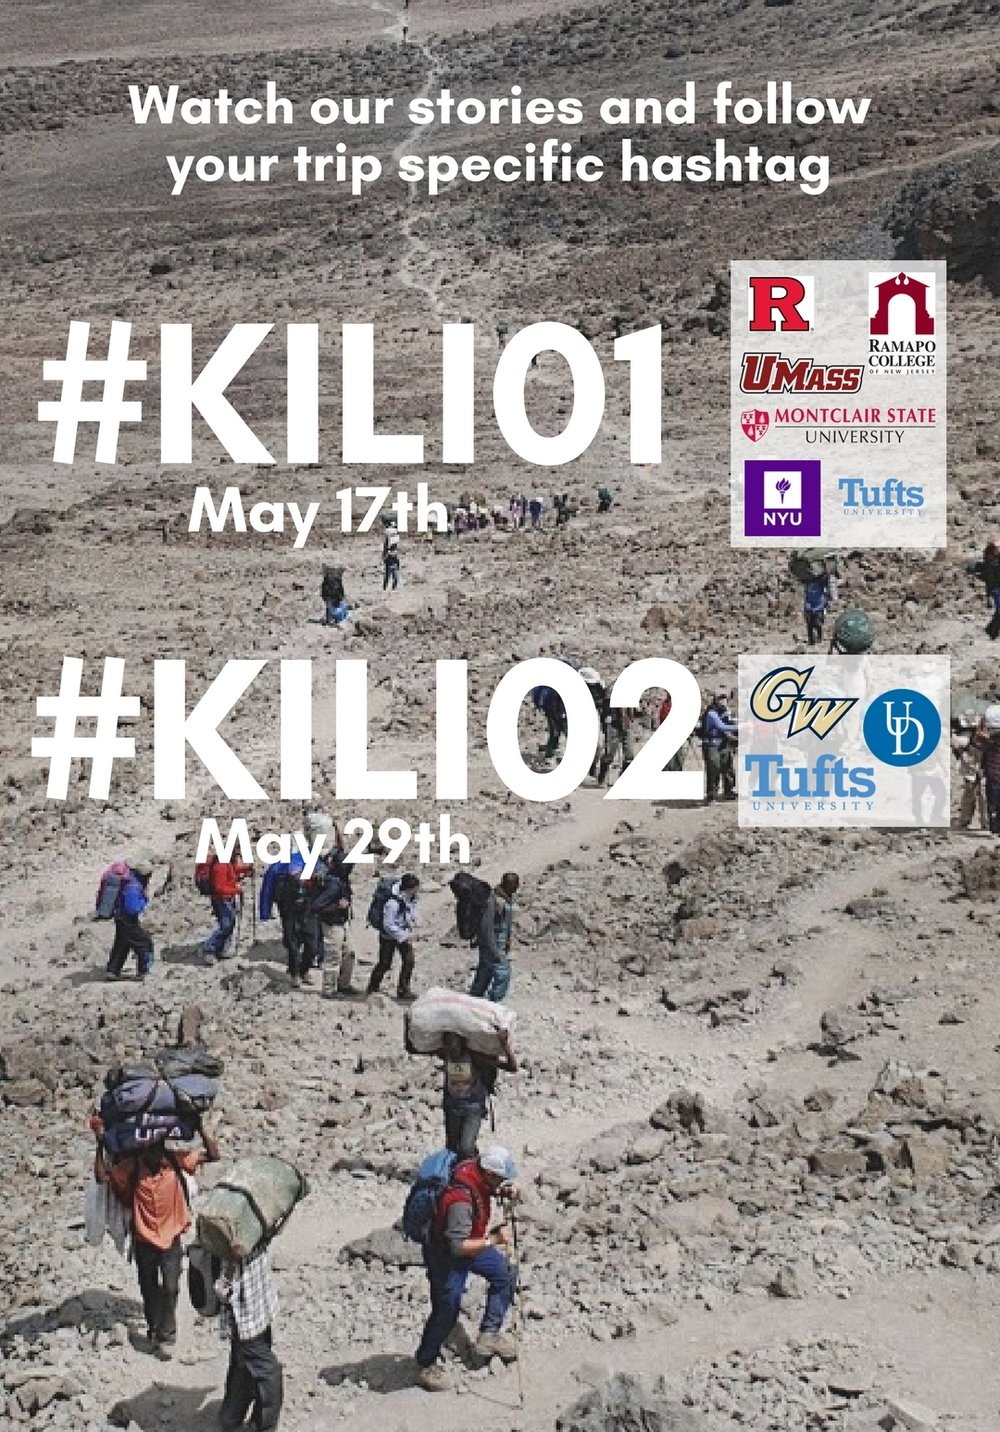 #KILI01 SCHOOLS:  Rutgers University Tufts University (Split) Ramapo College Montclair State University UMass-Amherst NYU   #KILI02 SCHOOLS:  GWU Tufts University (Split) University of Delaware